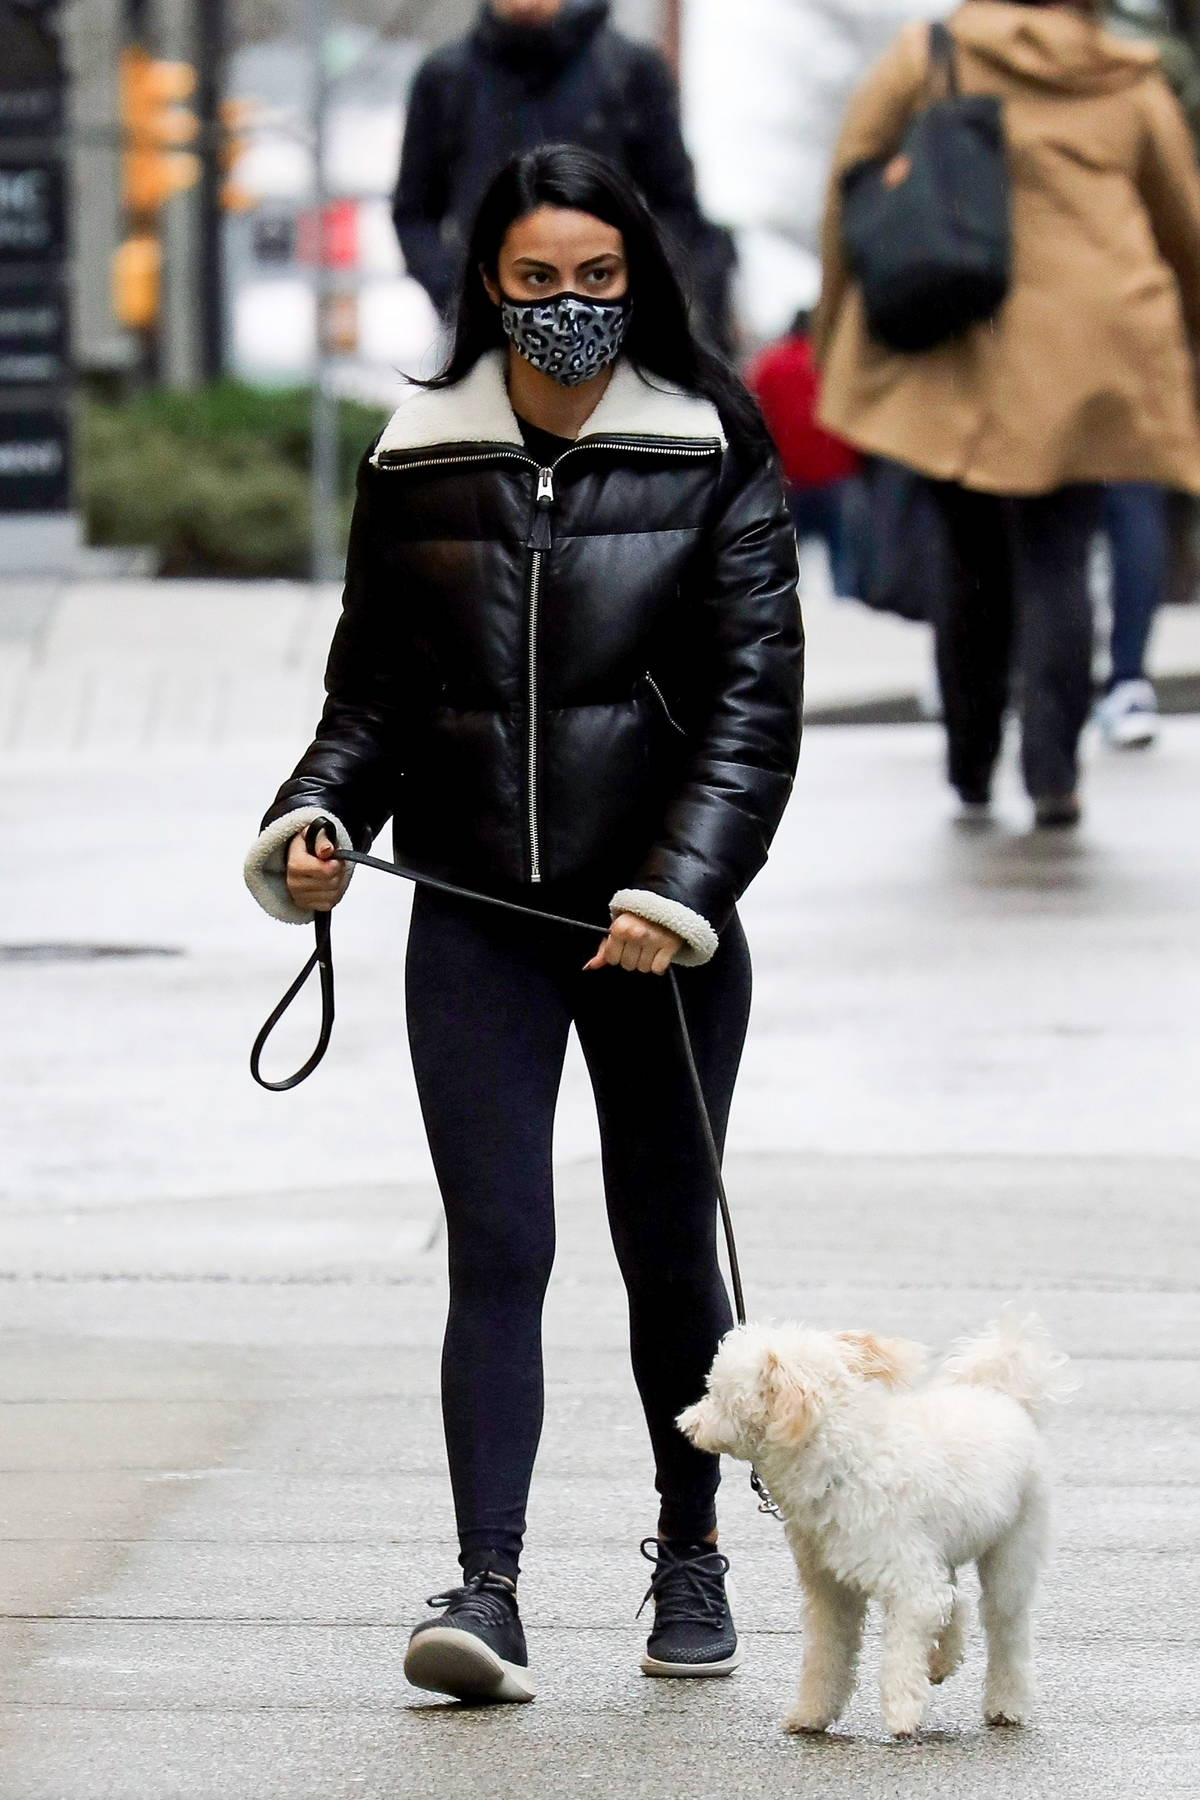 Camila Mendes stays warm in a black jacket and leggings while walking her dog in Vancouver, Canada